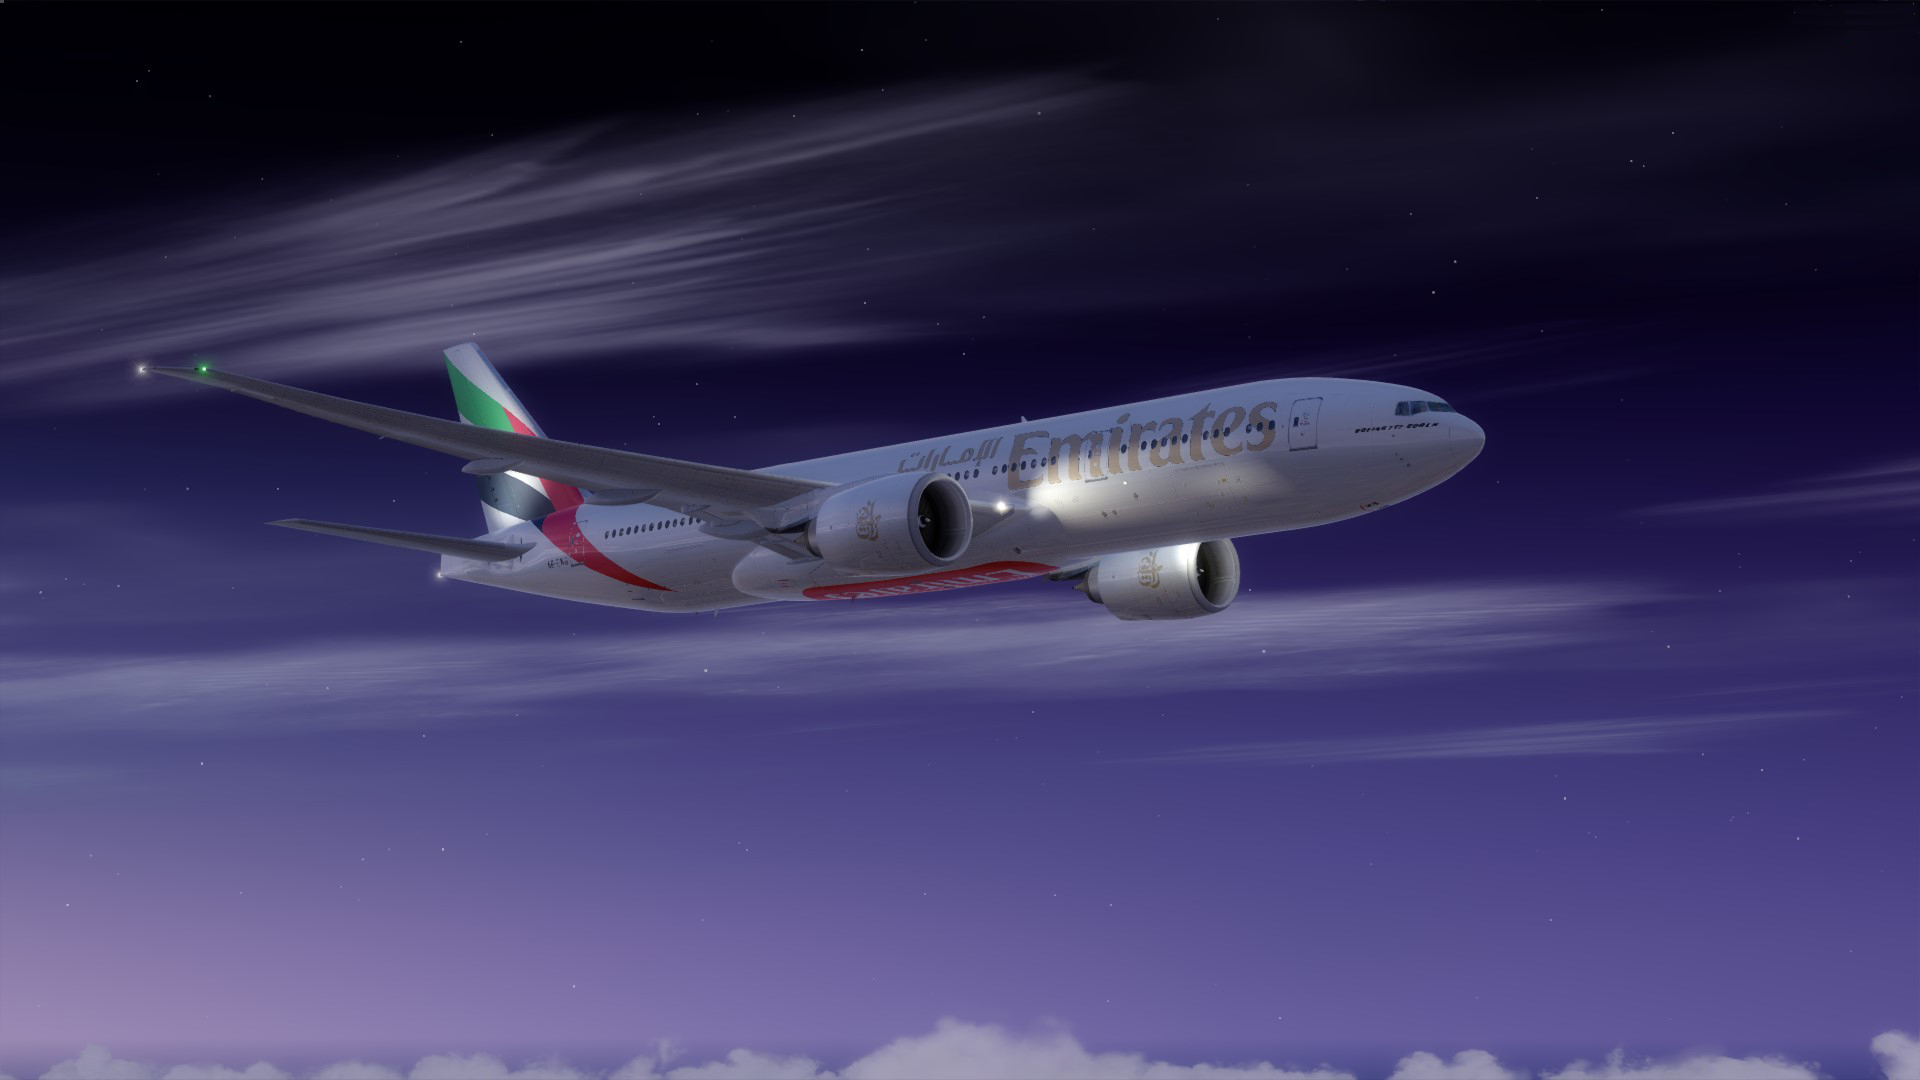 Early morning with UAE609 from OPKC to OMDB